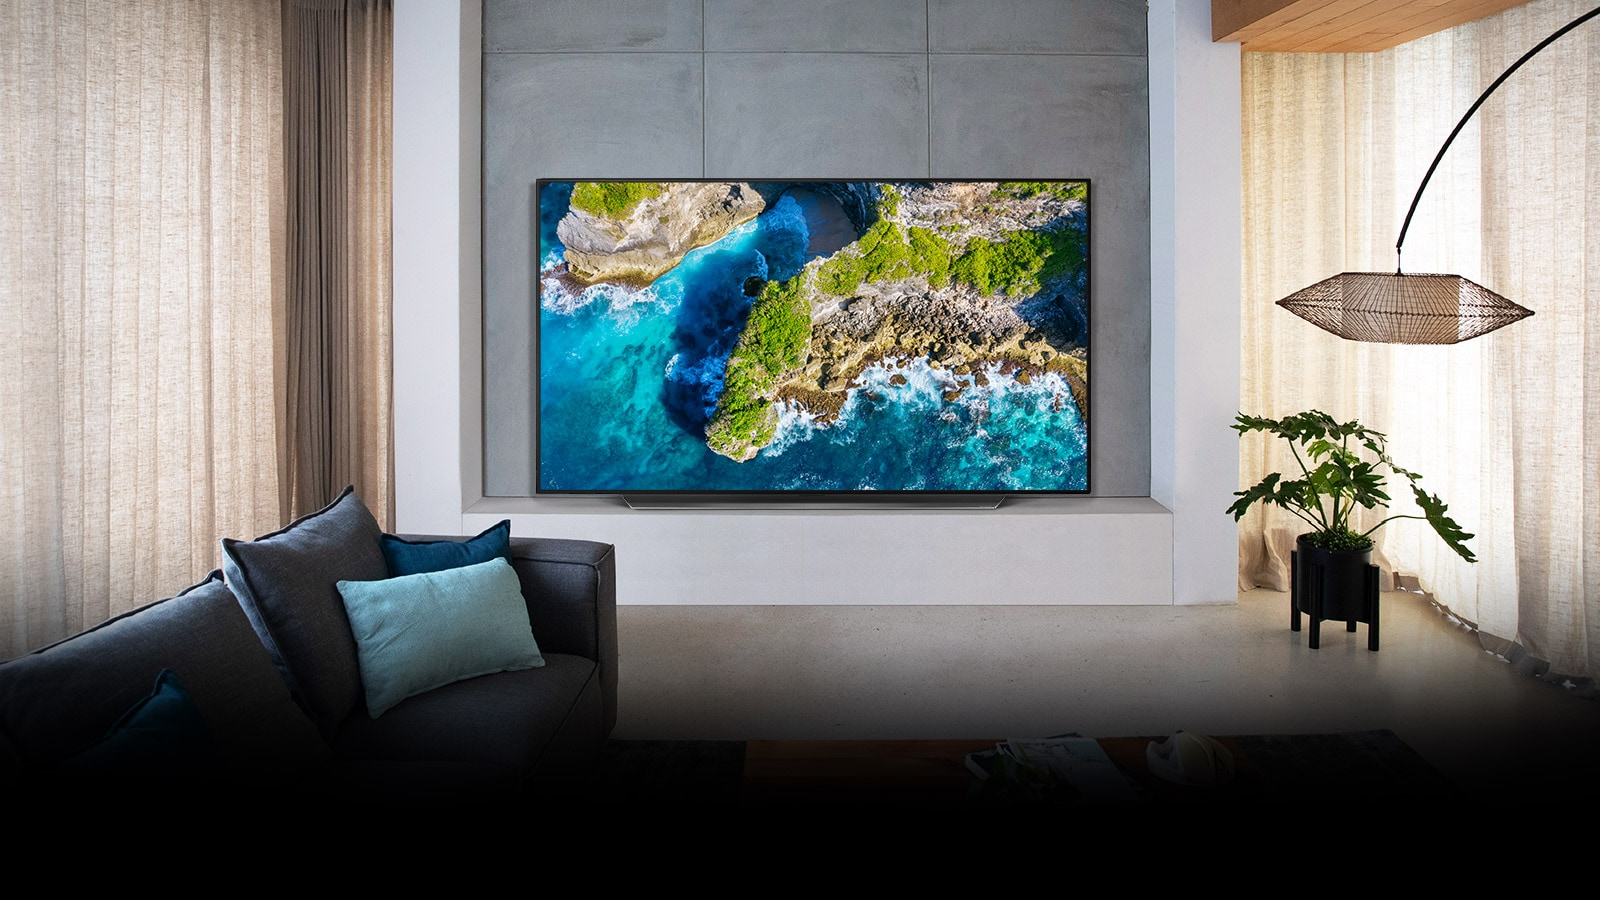 Luxury quality house, TV shows an aerial view of nature